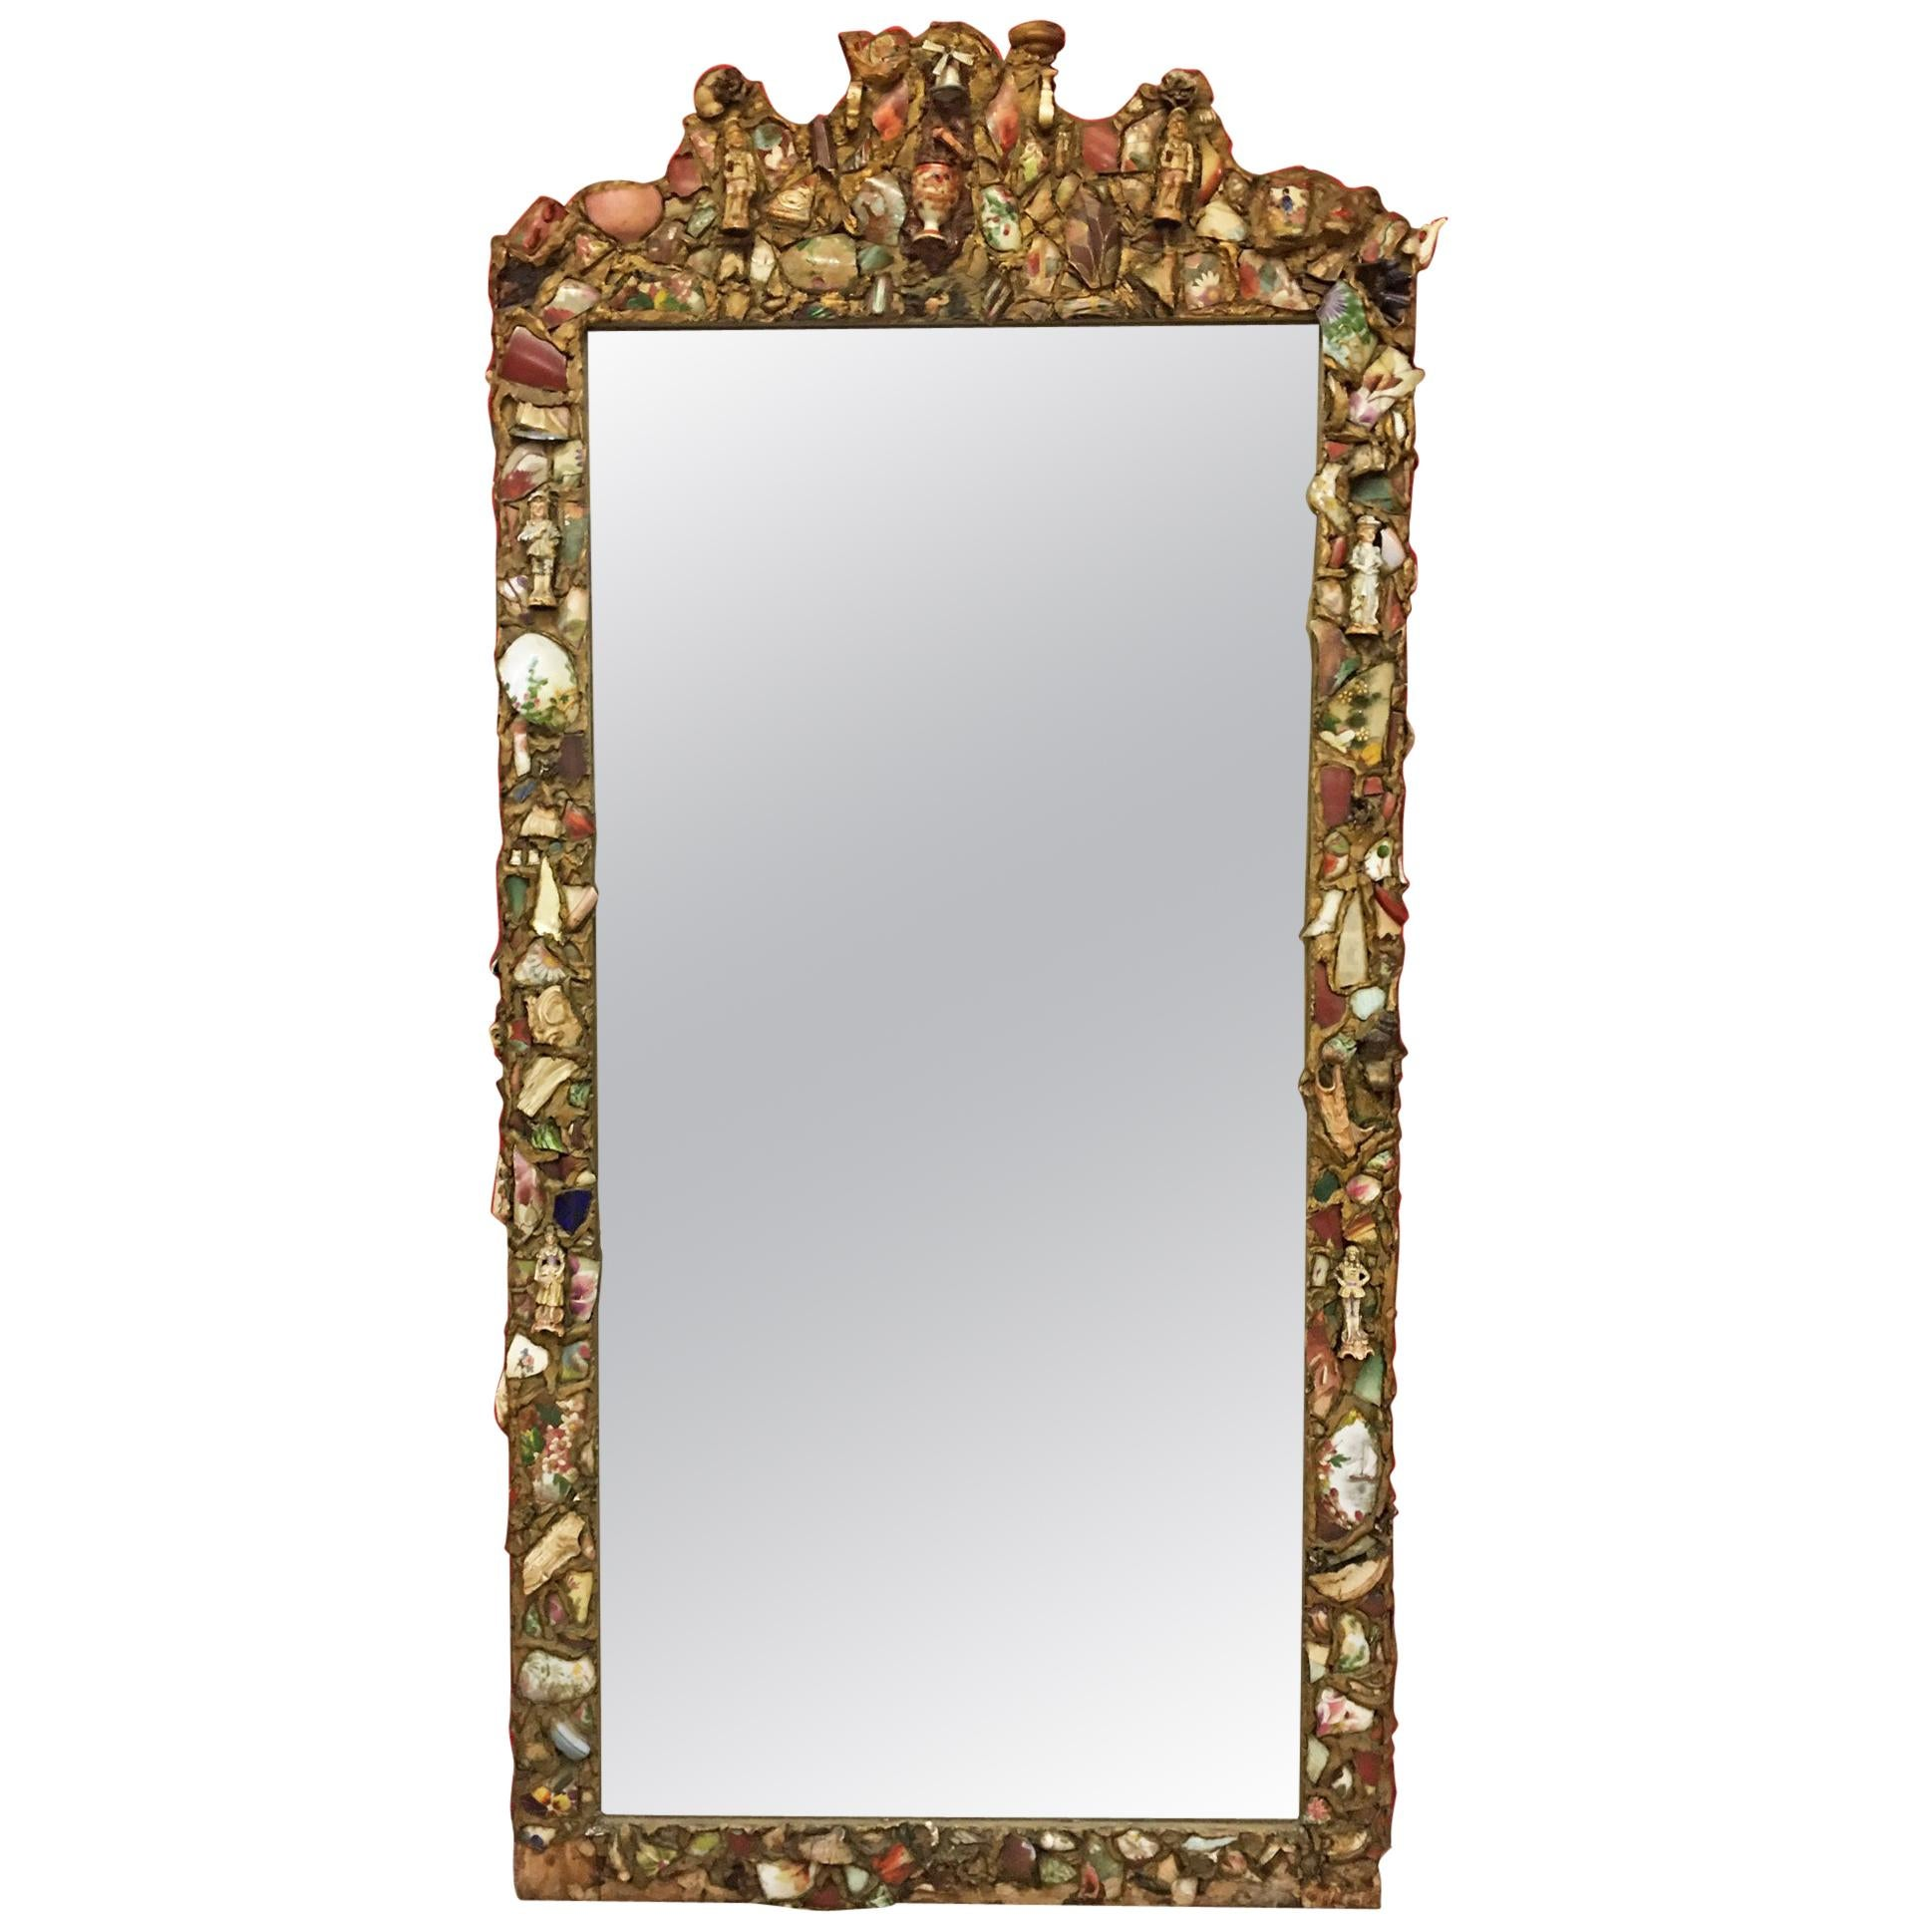 Rare Large Folk Art Mirror circa 1900, the Frame Is Composed of a Mosaic